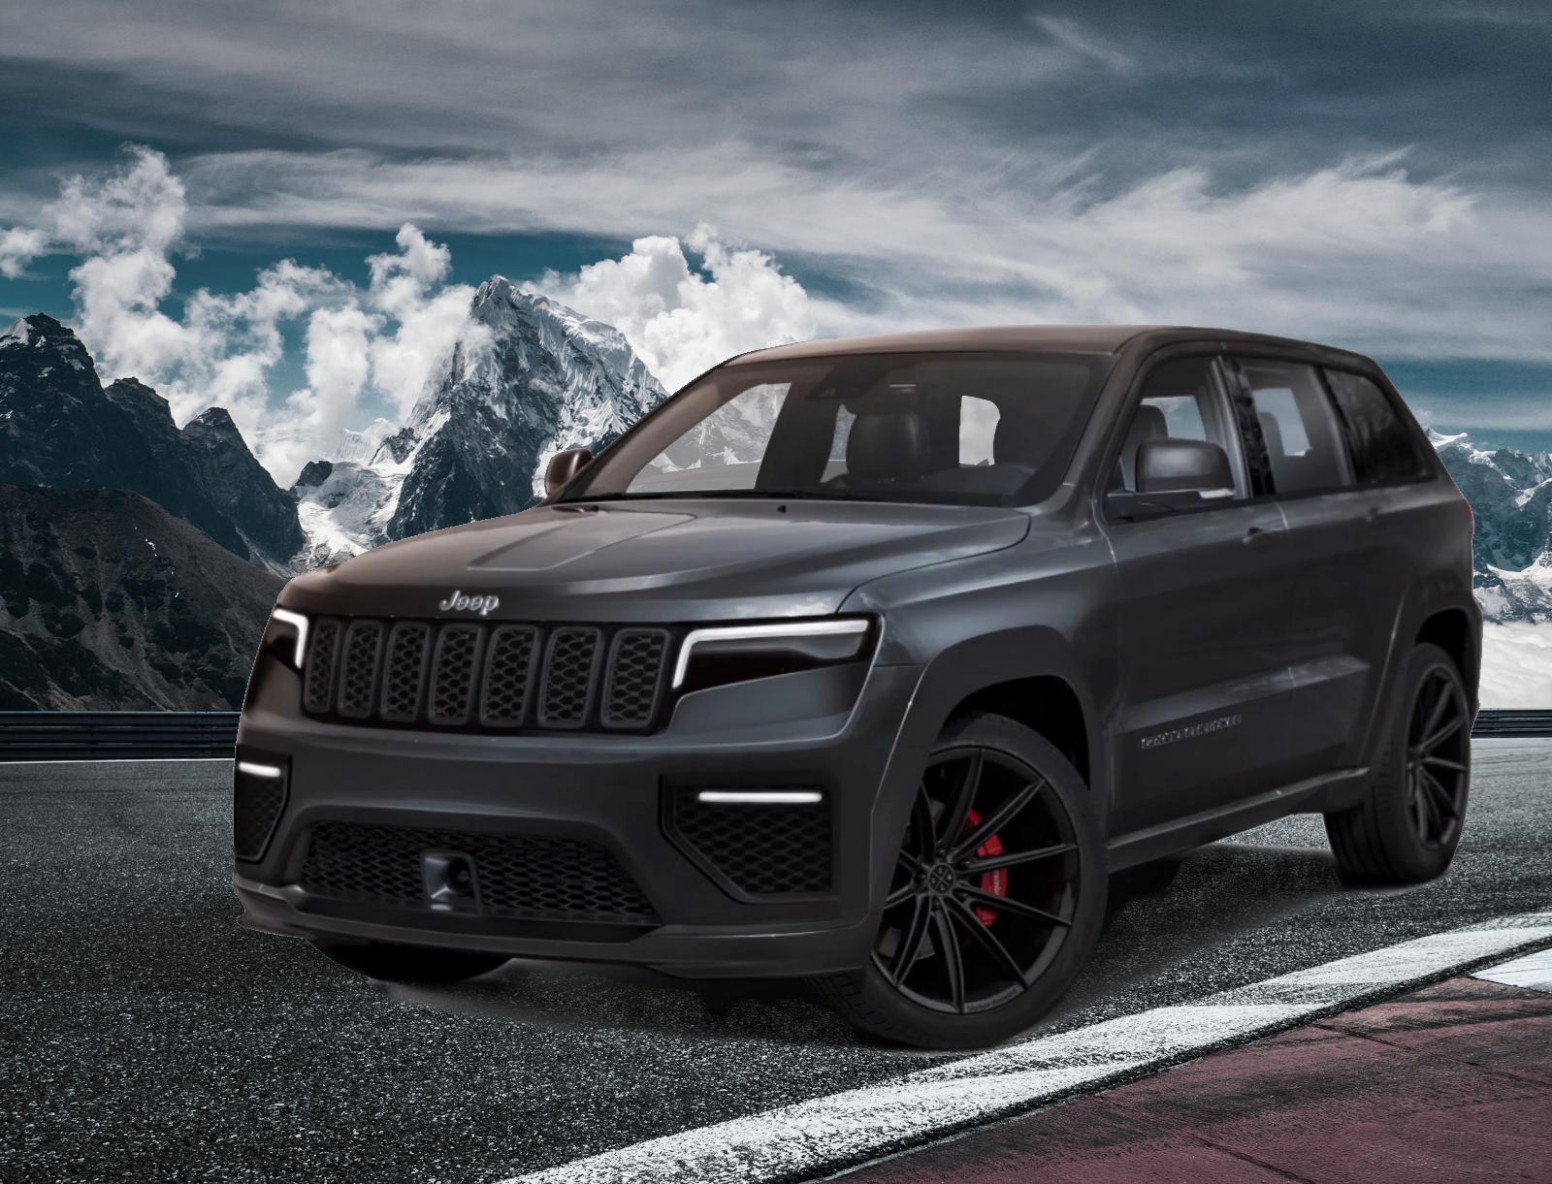 All You Need To Know About The All-New 5 Jeep Grand Cherokee - Jeep Suv 2021